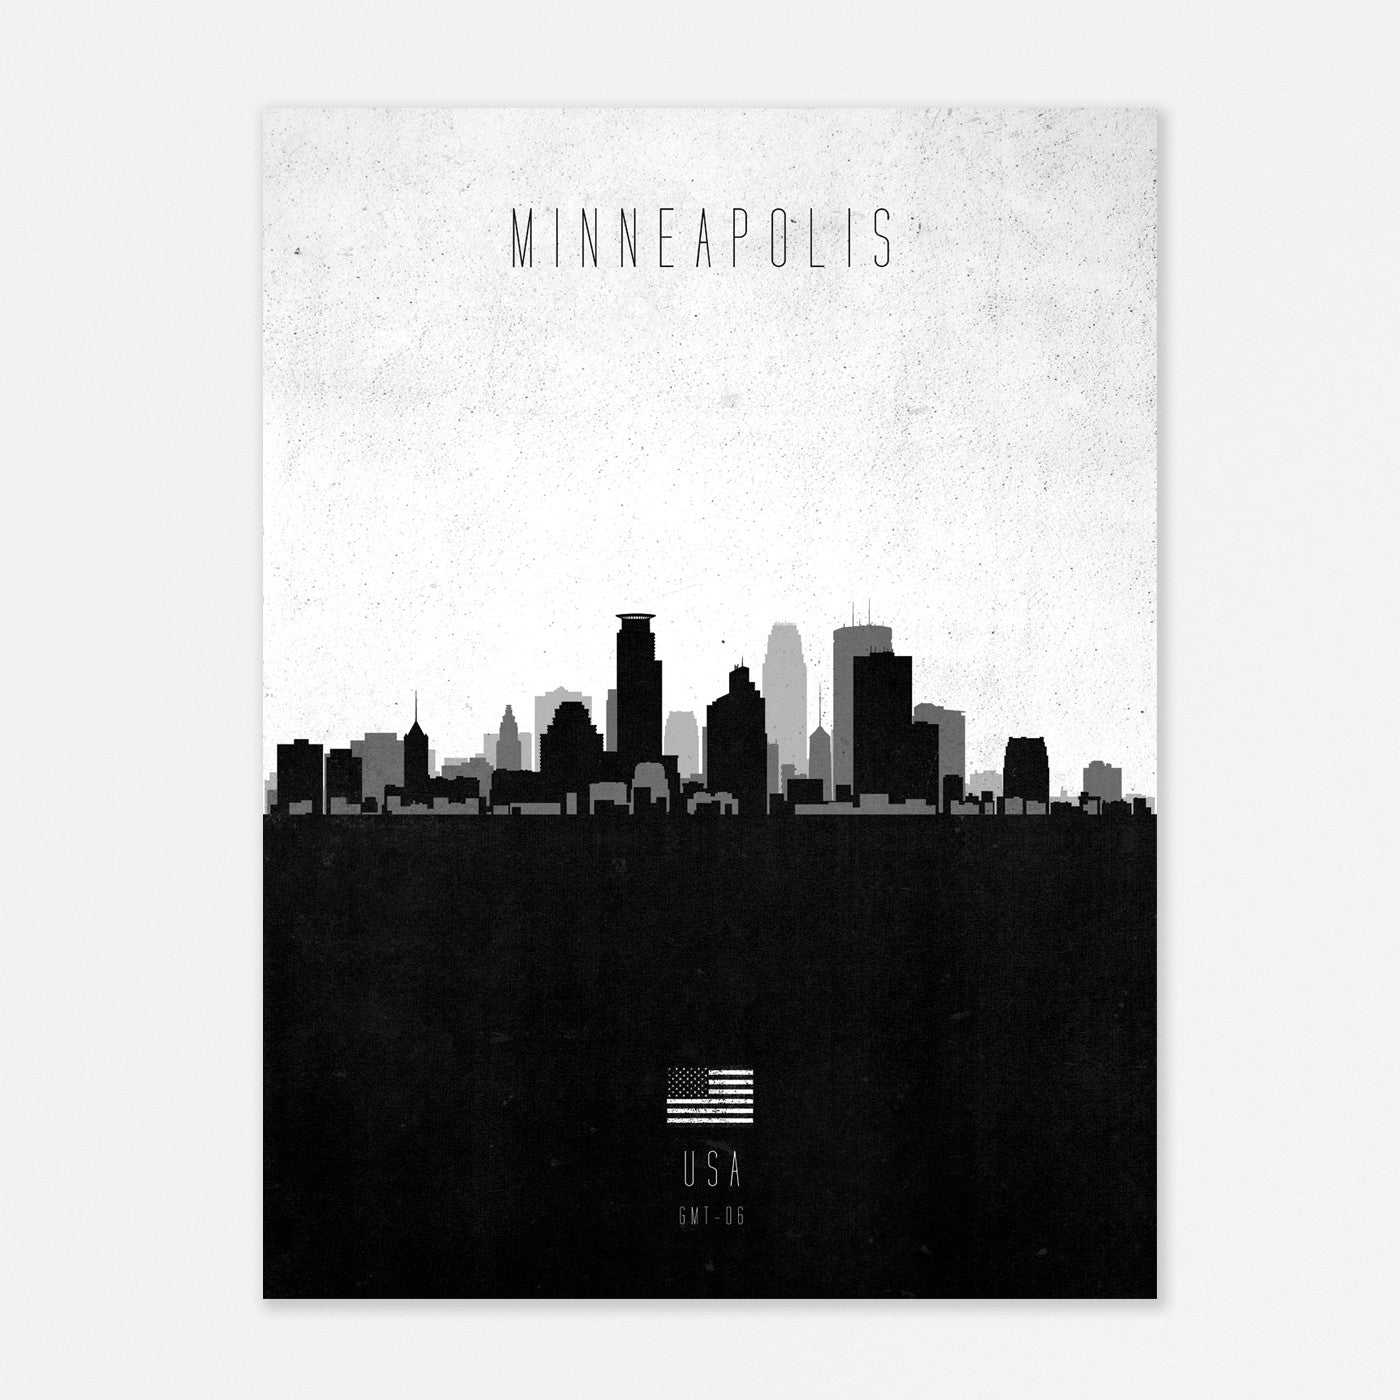 Minneapolis: GMT -06